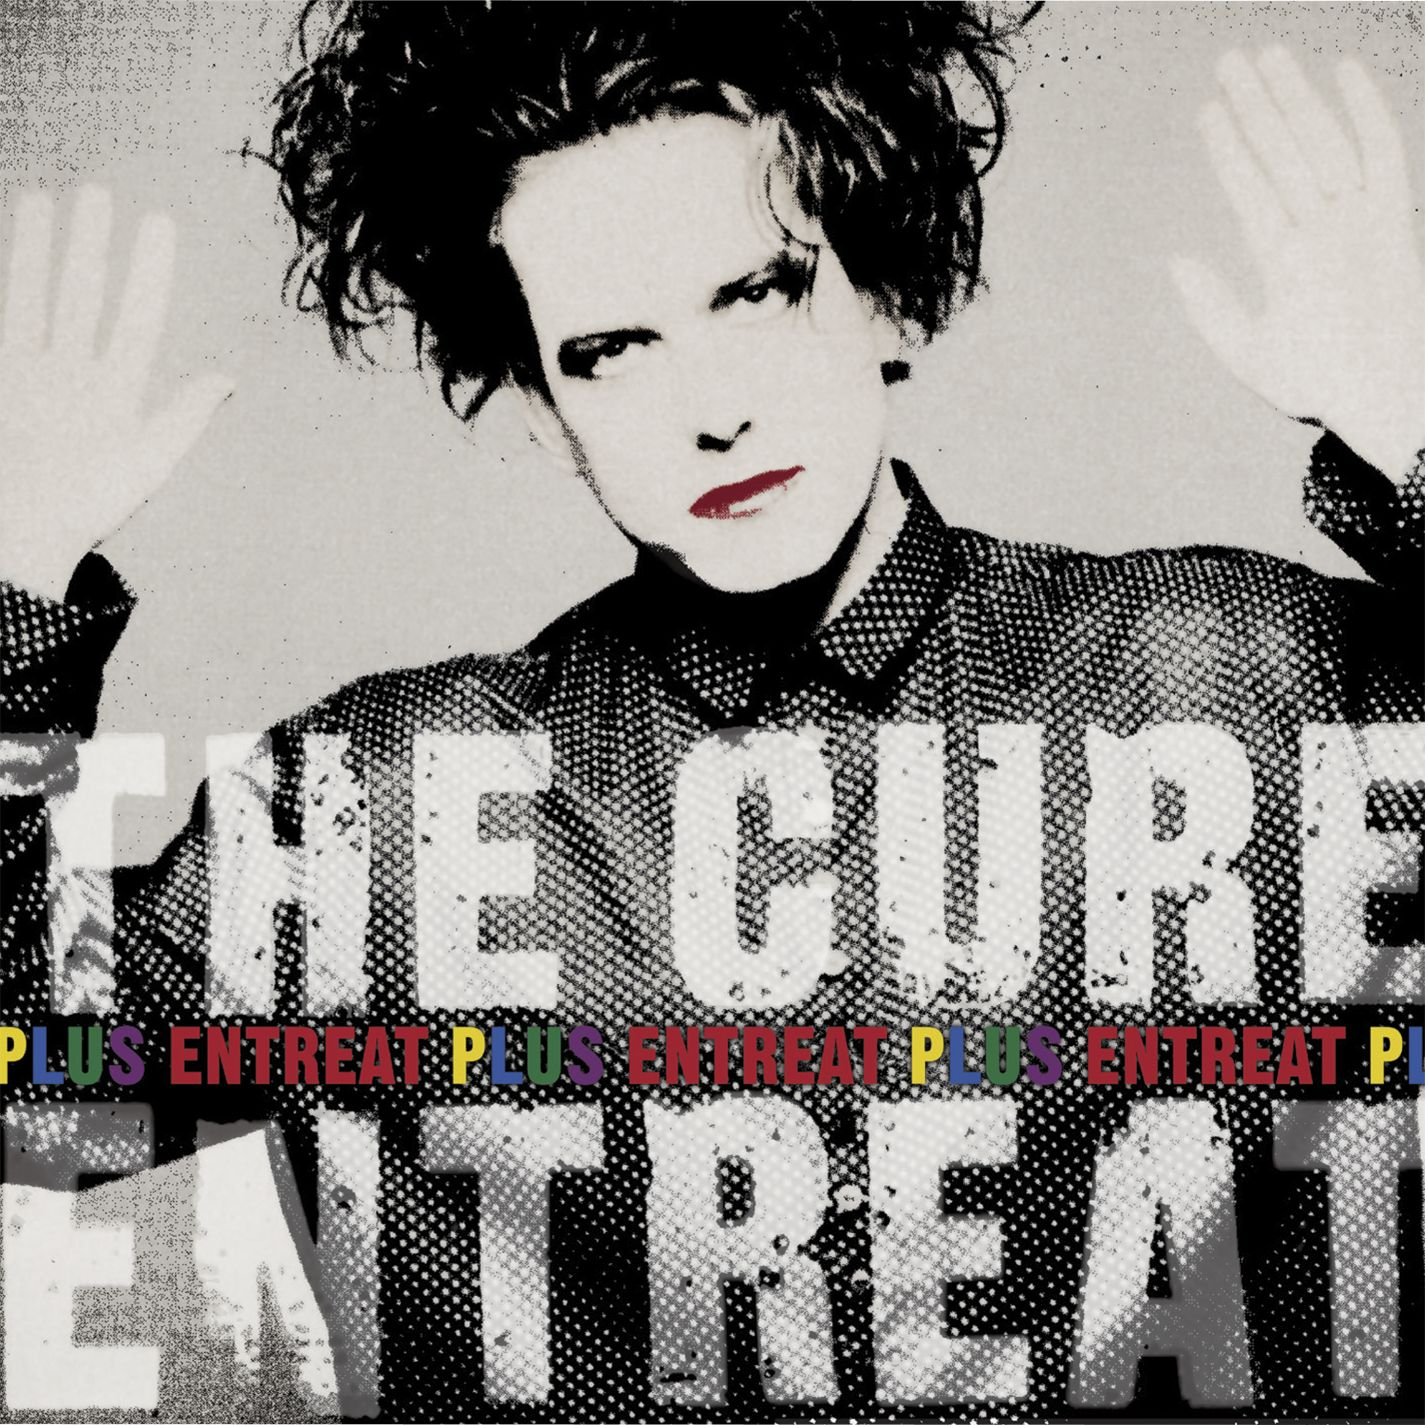 The Cure's expanded 'Entreat Plus' live album to be released on double vinyl in January